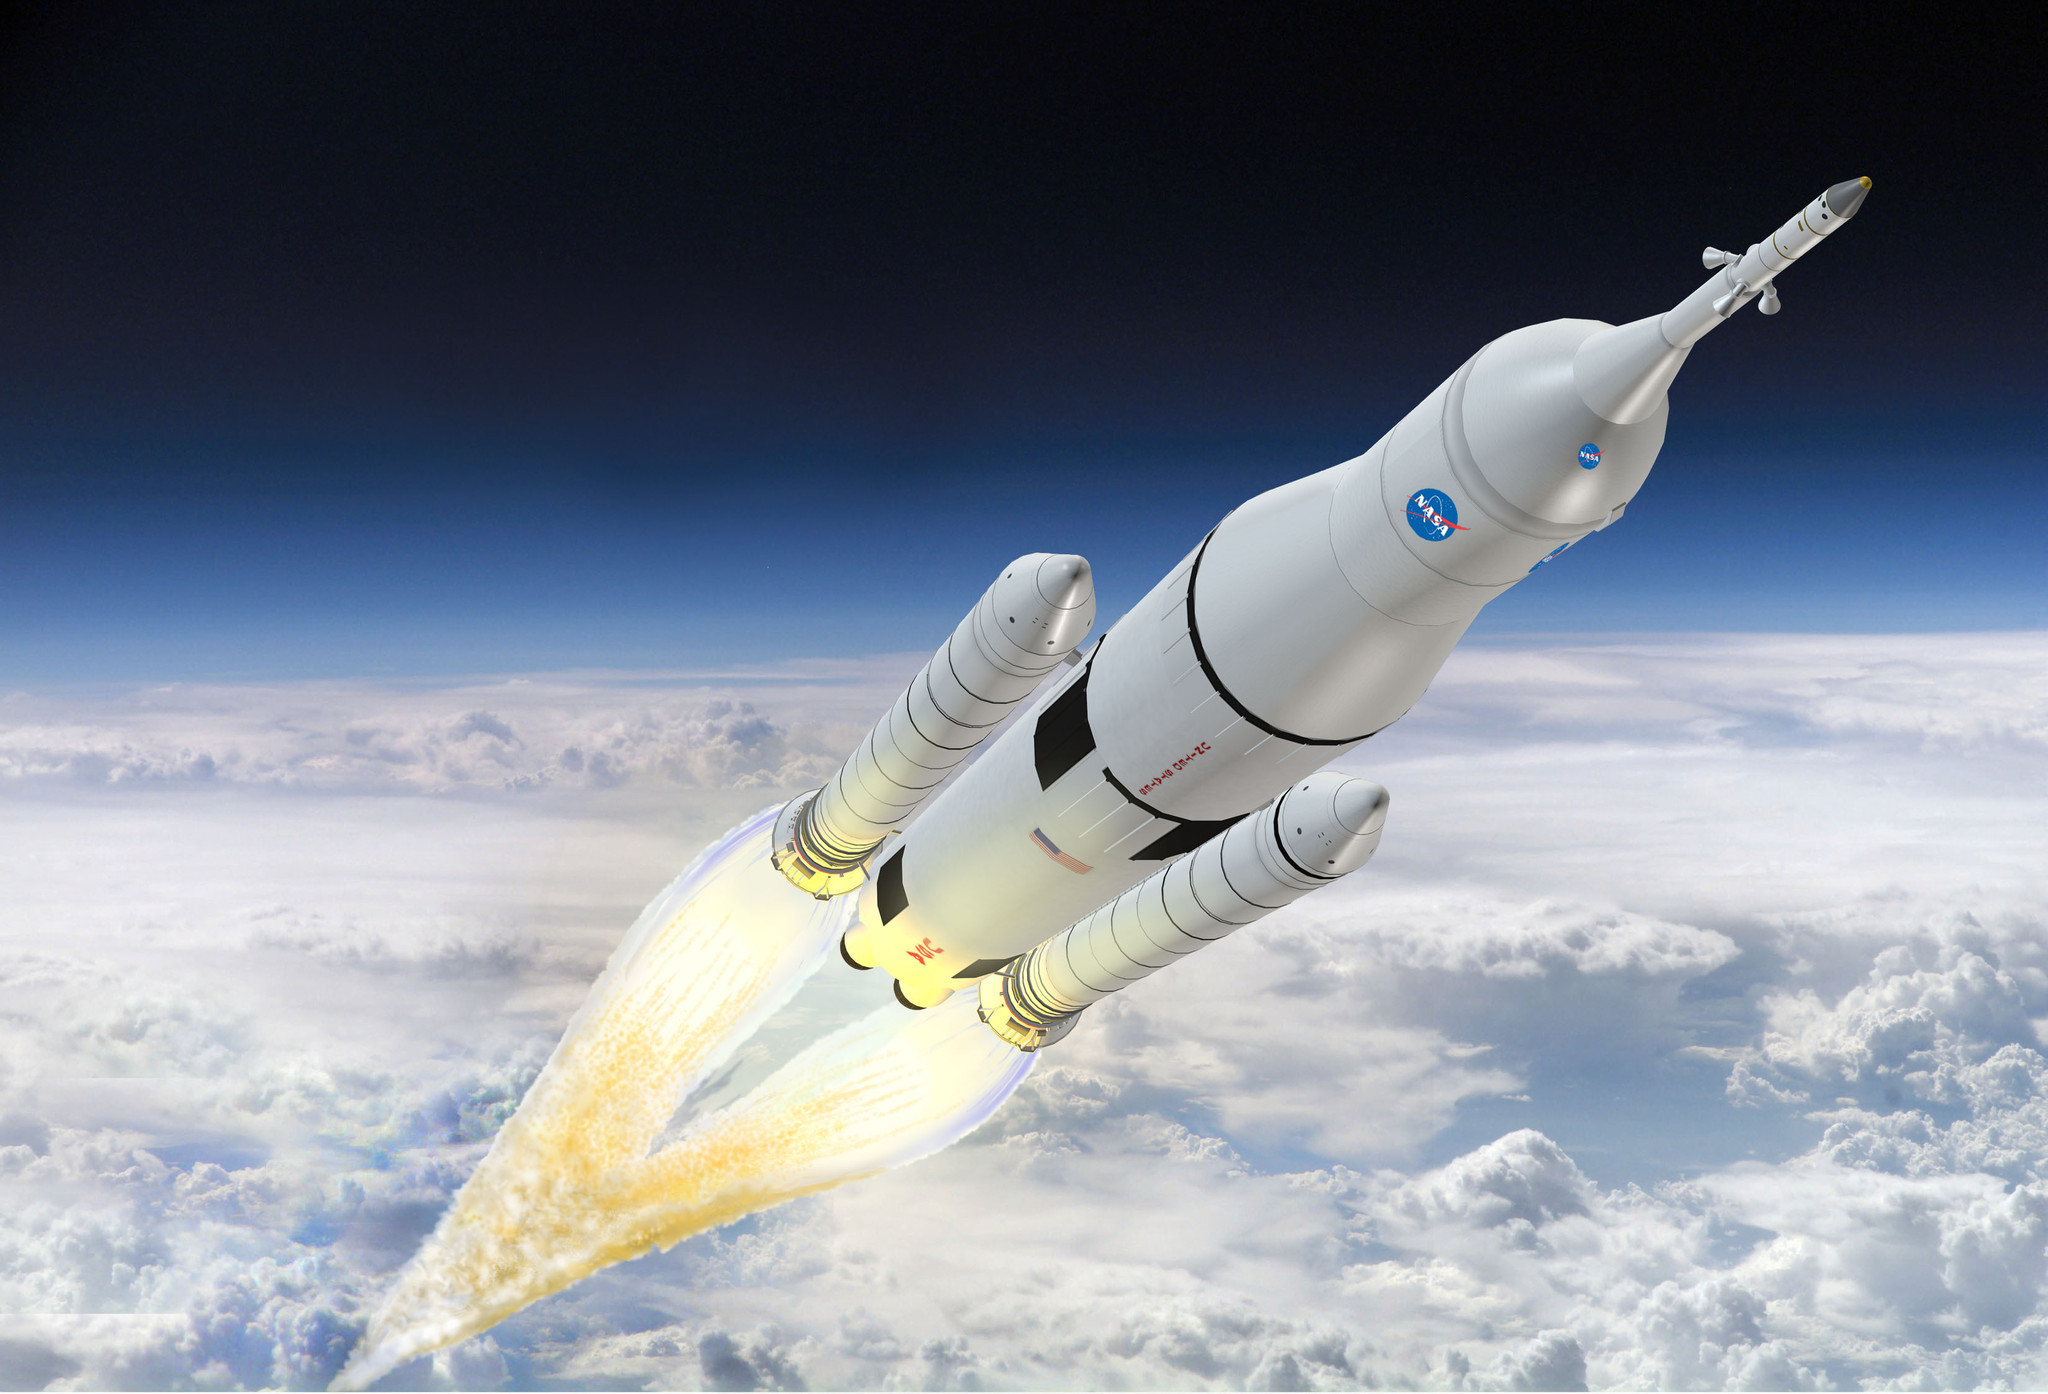 Upcoming launches and landings of crew members to and from the International Space Station and launches of rockets delivering spacecraft that observe the Earth